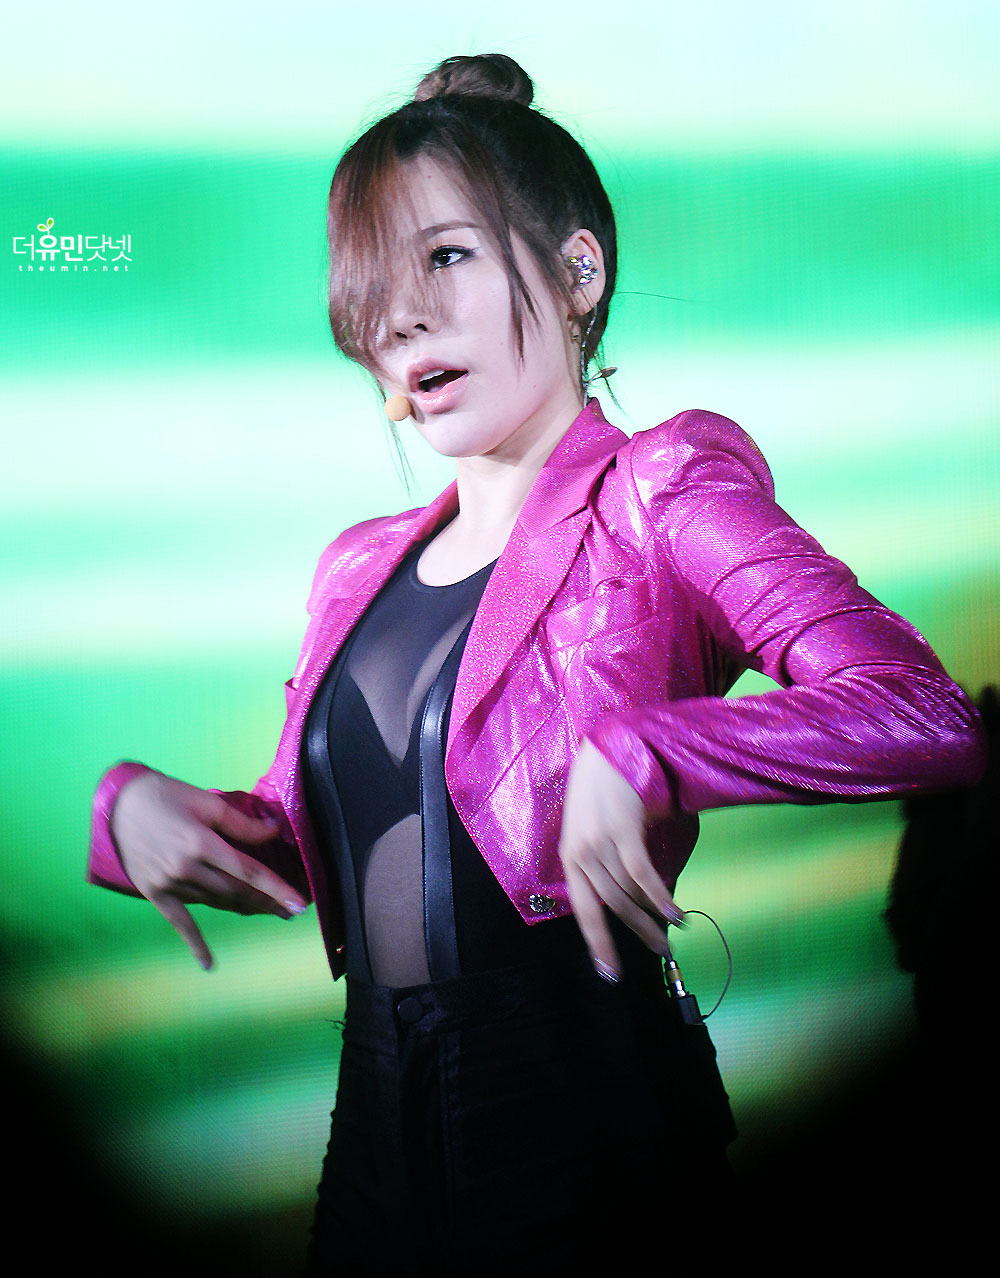 SNSD Sunny at Girls Generation Tour 2011